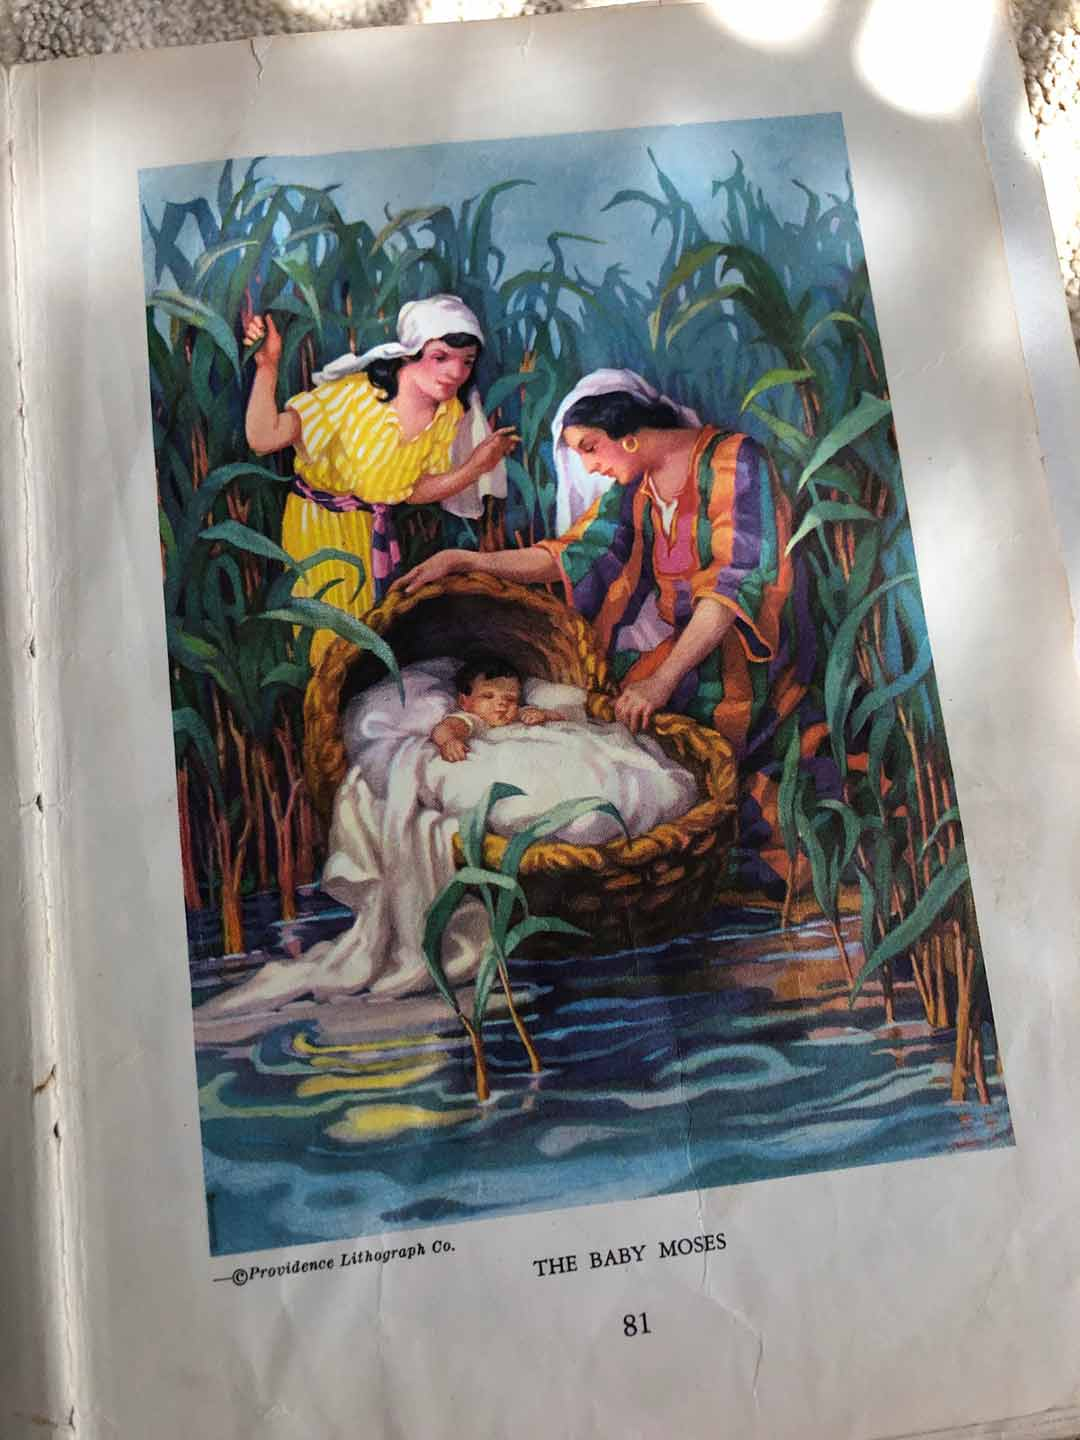 Egermeier's Bible Story Book illustration of the Baby Moses.